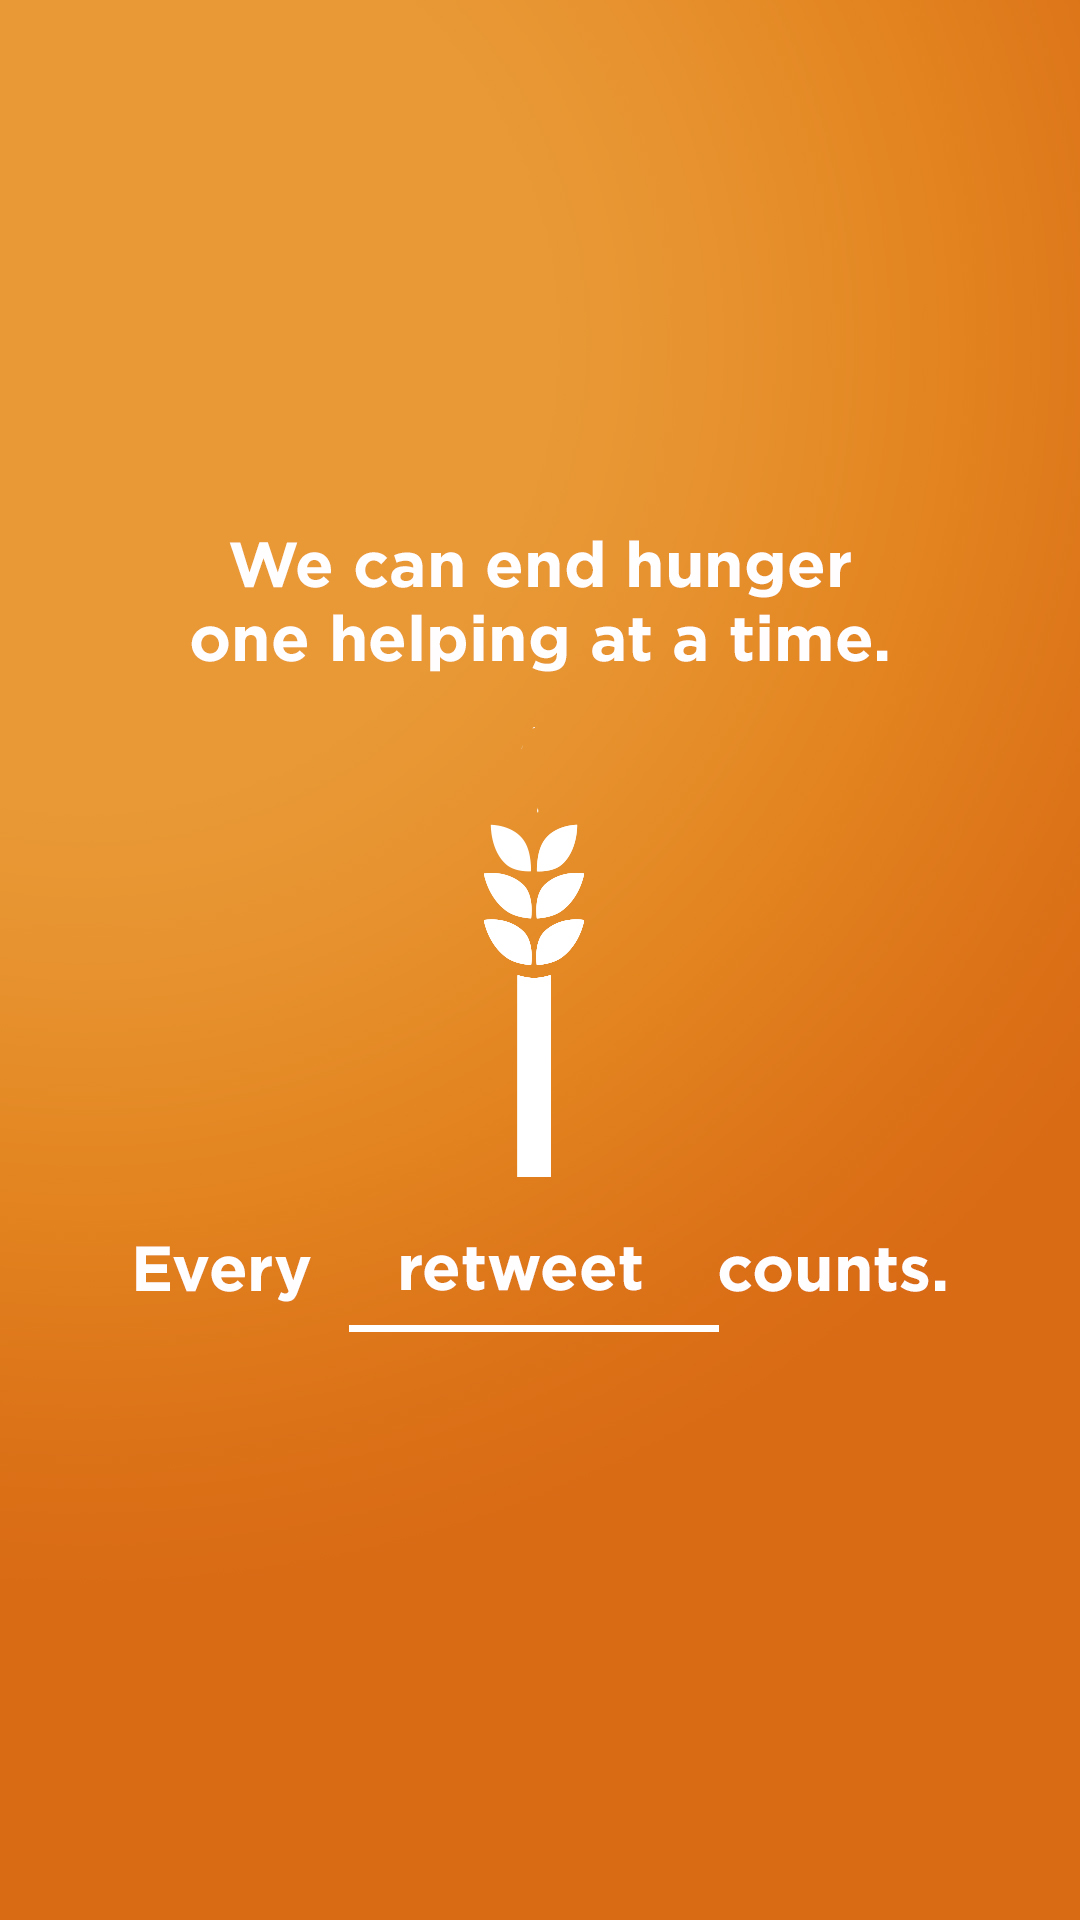 We can end hunger - retweet